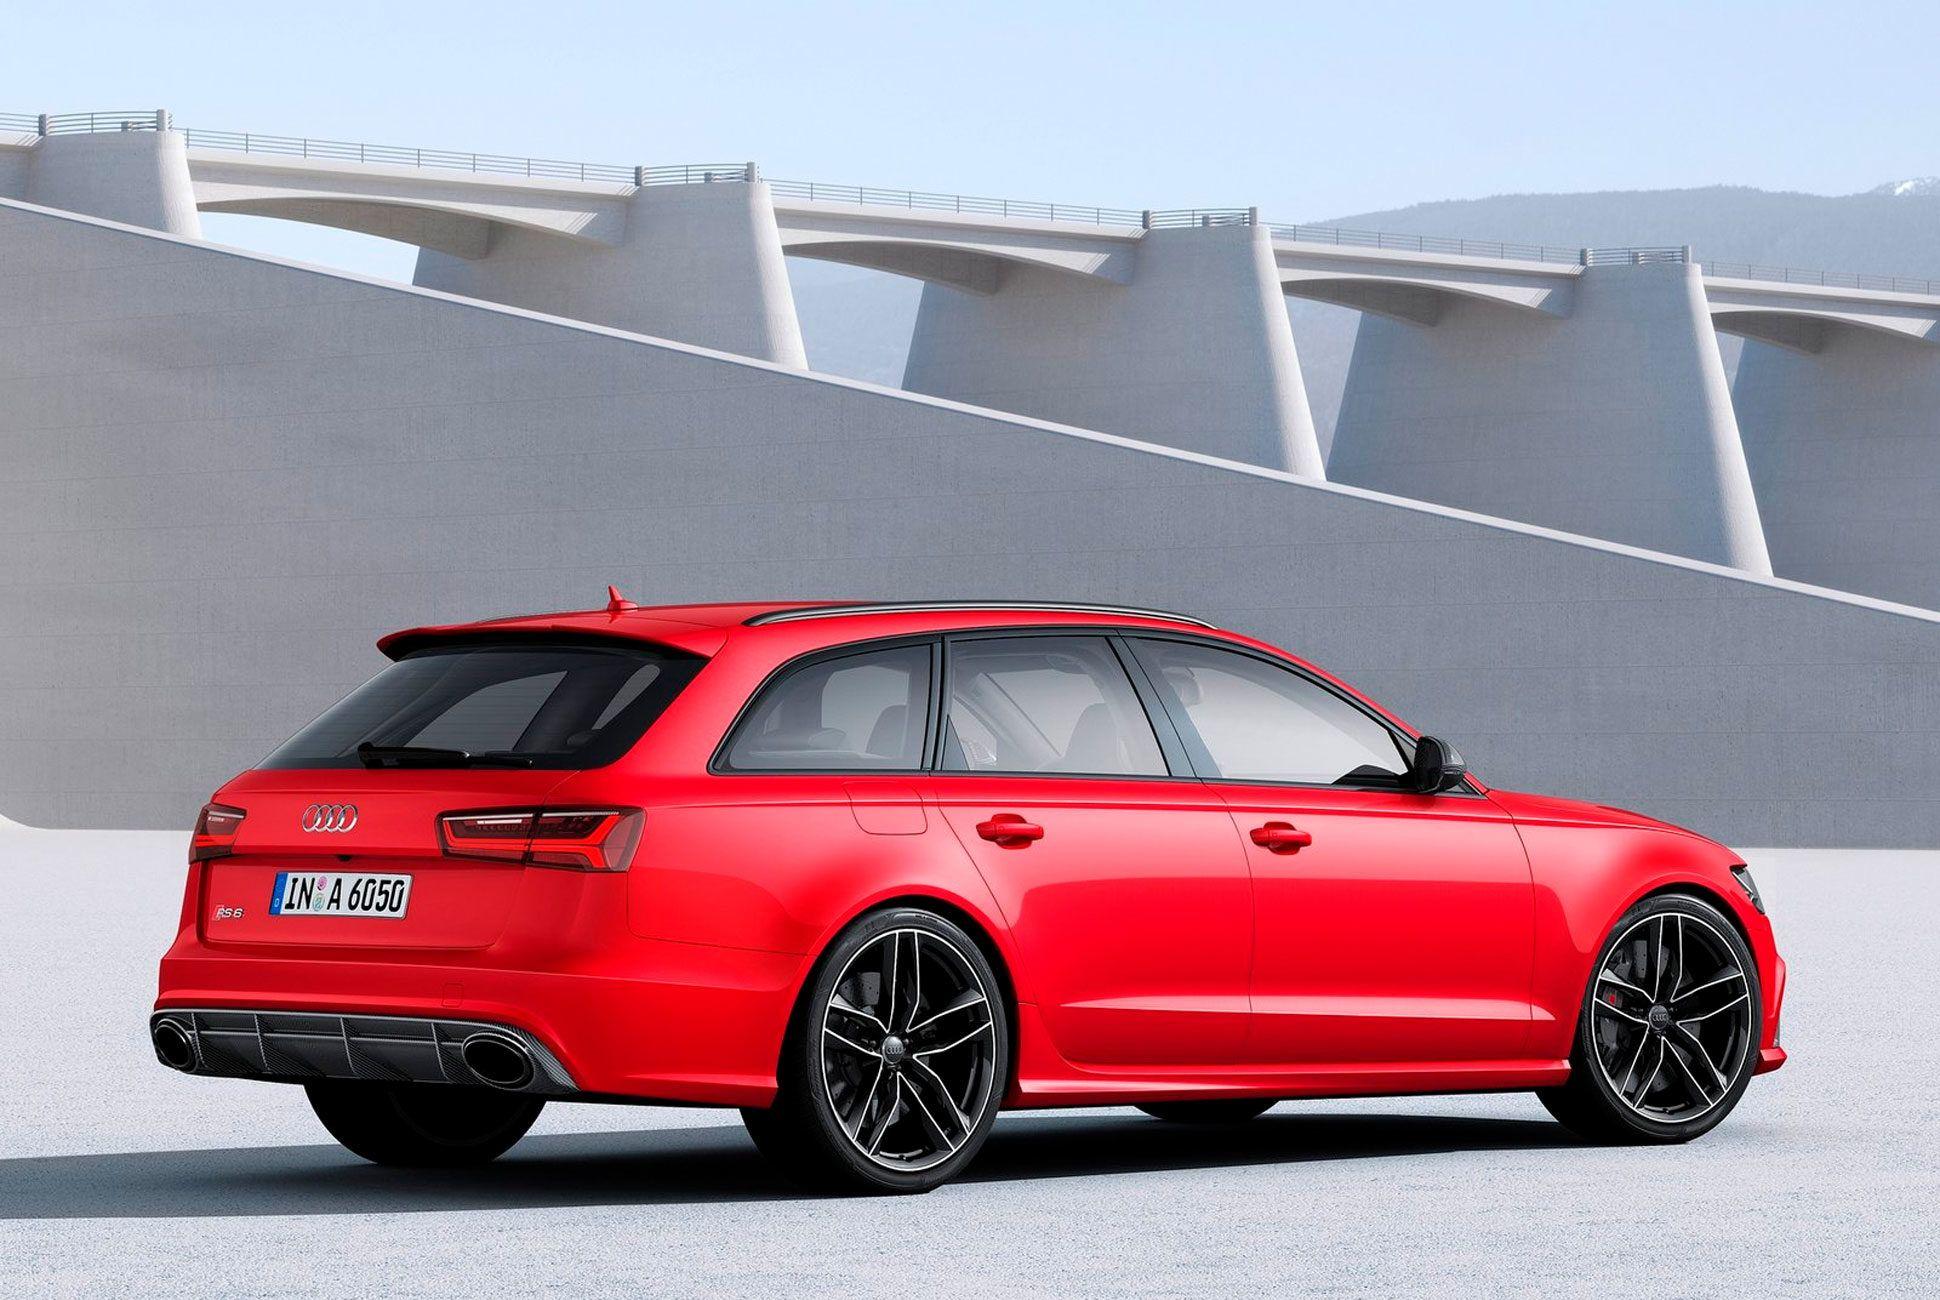 RS6-Avant-Gear-Patrol-slide-2